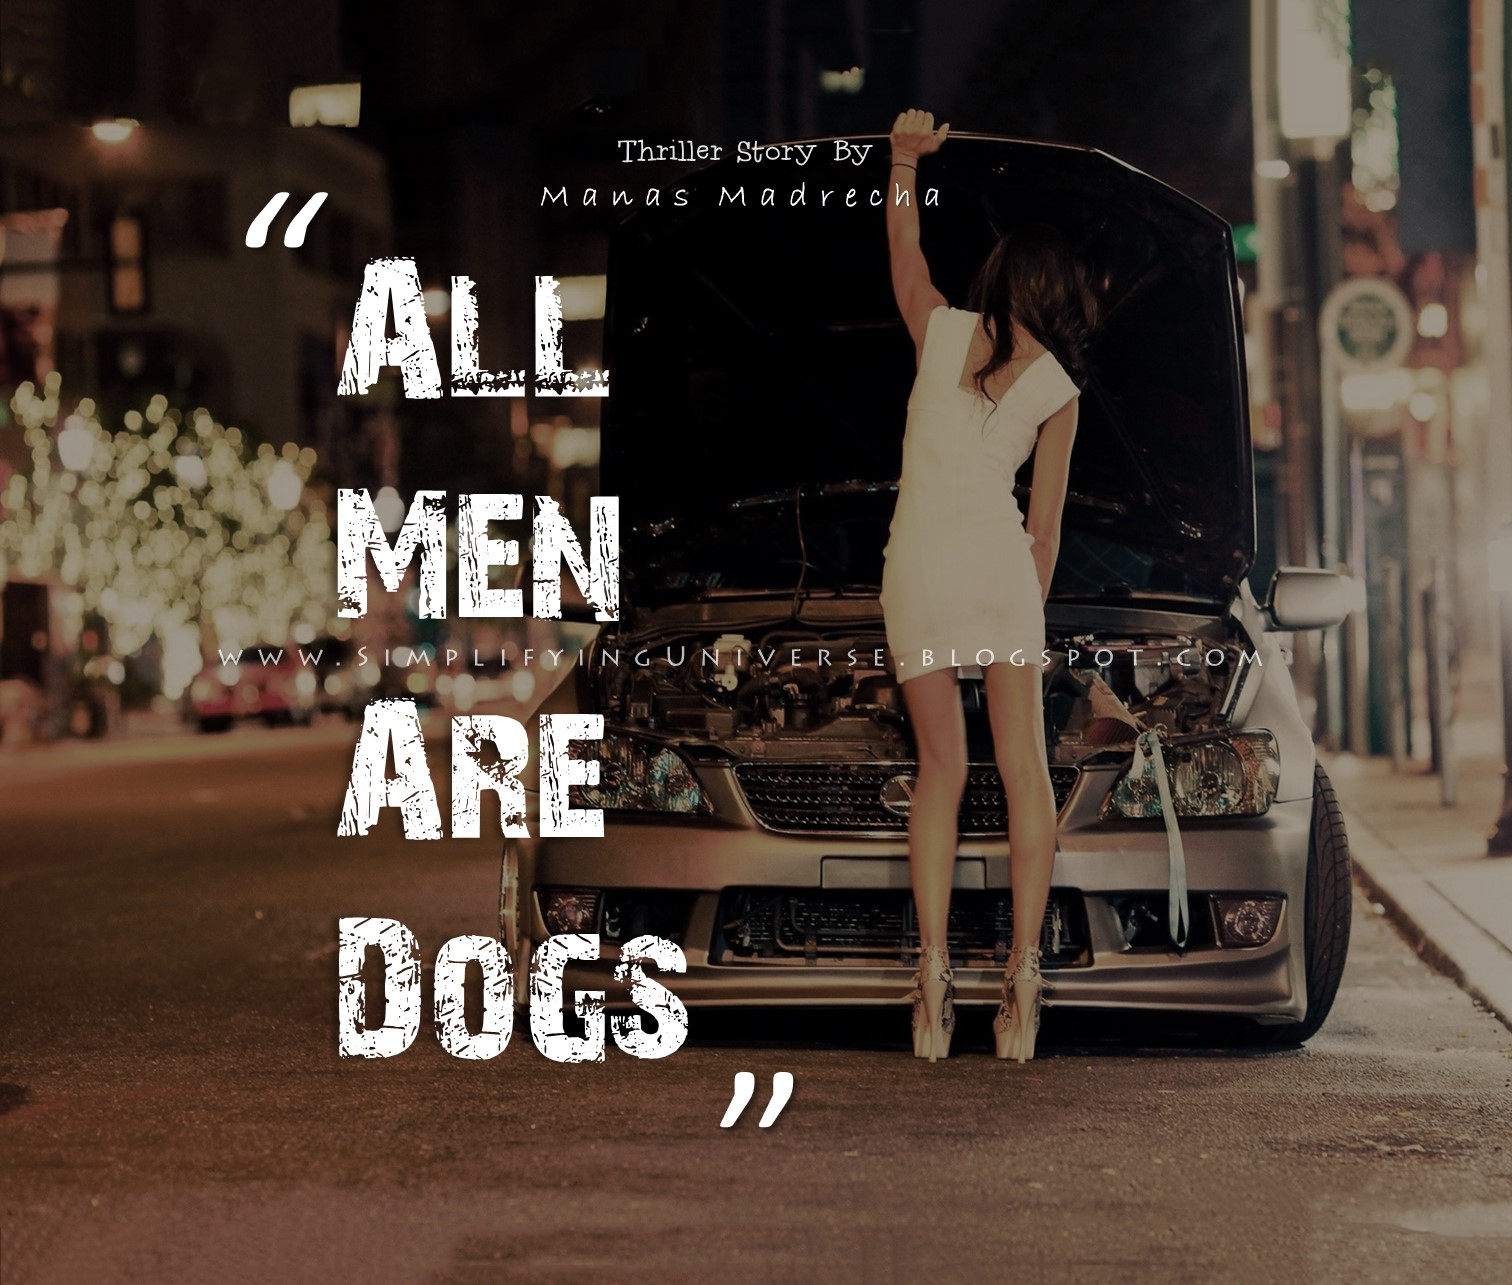 all men are dogs, all men are pigs, manas madrecha, manas madrecha blog, manas madrecha quotes, quotes on feminism, quotes on girls, quotes on women, quotes on men, teenage story, drama story, love story, thriller story, horror story, feminist story, girl alone at night, girl walking alone, girl with broken car, girl asking lift, girl on night street, night street, simplifying universe, girl in white, girl in one piece, girl and car